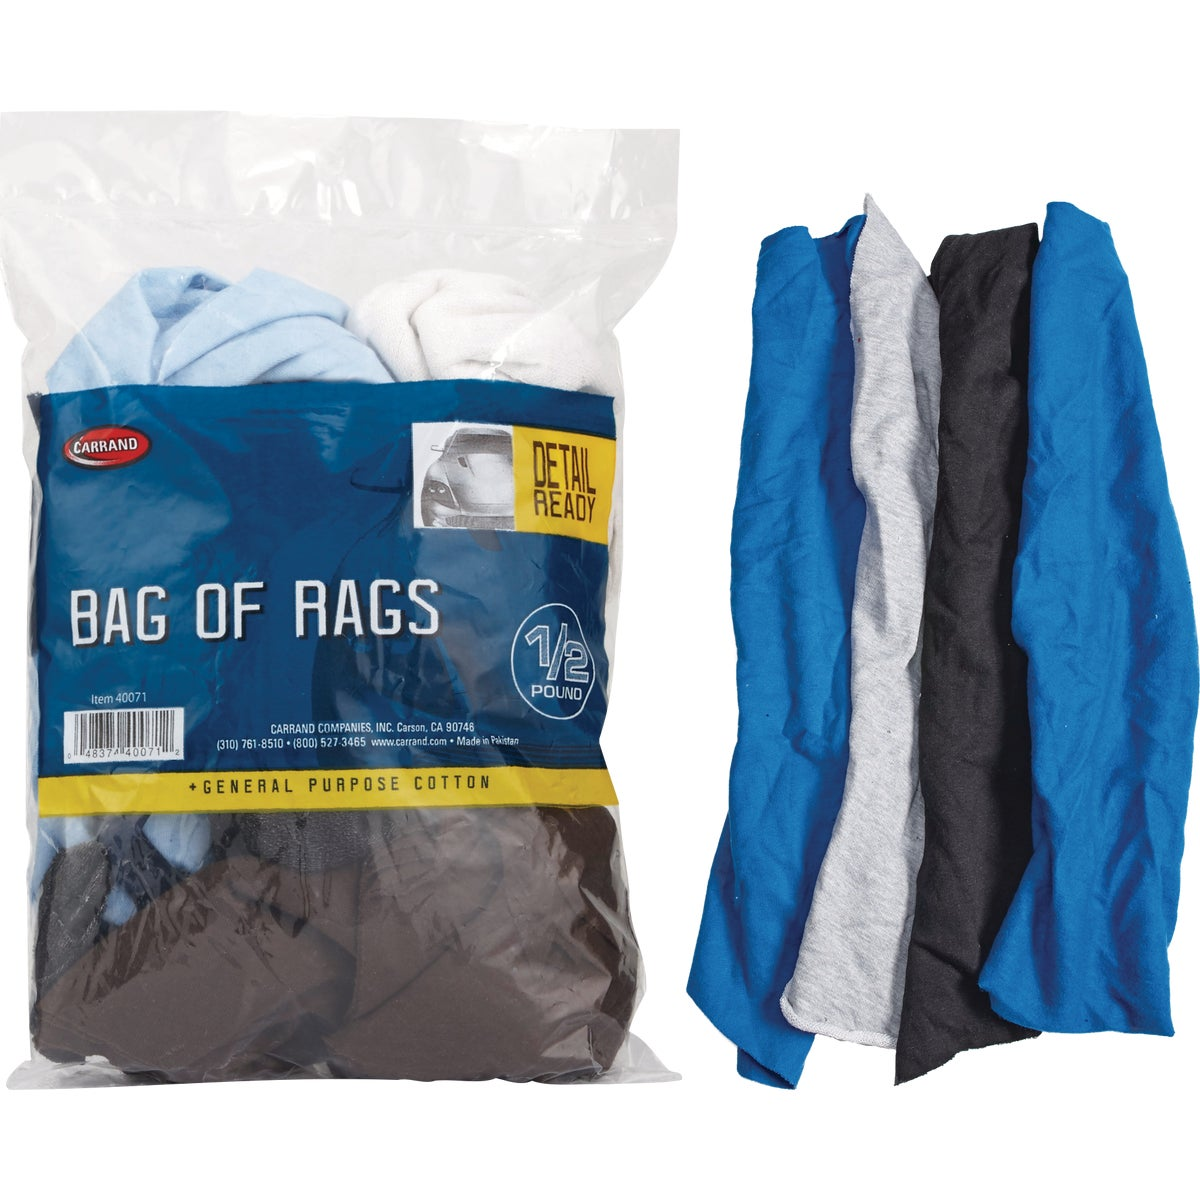 1/2LB BAG CLEANING RAGS